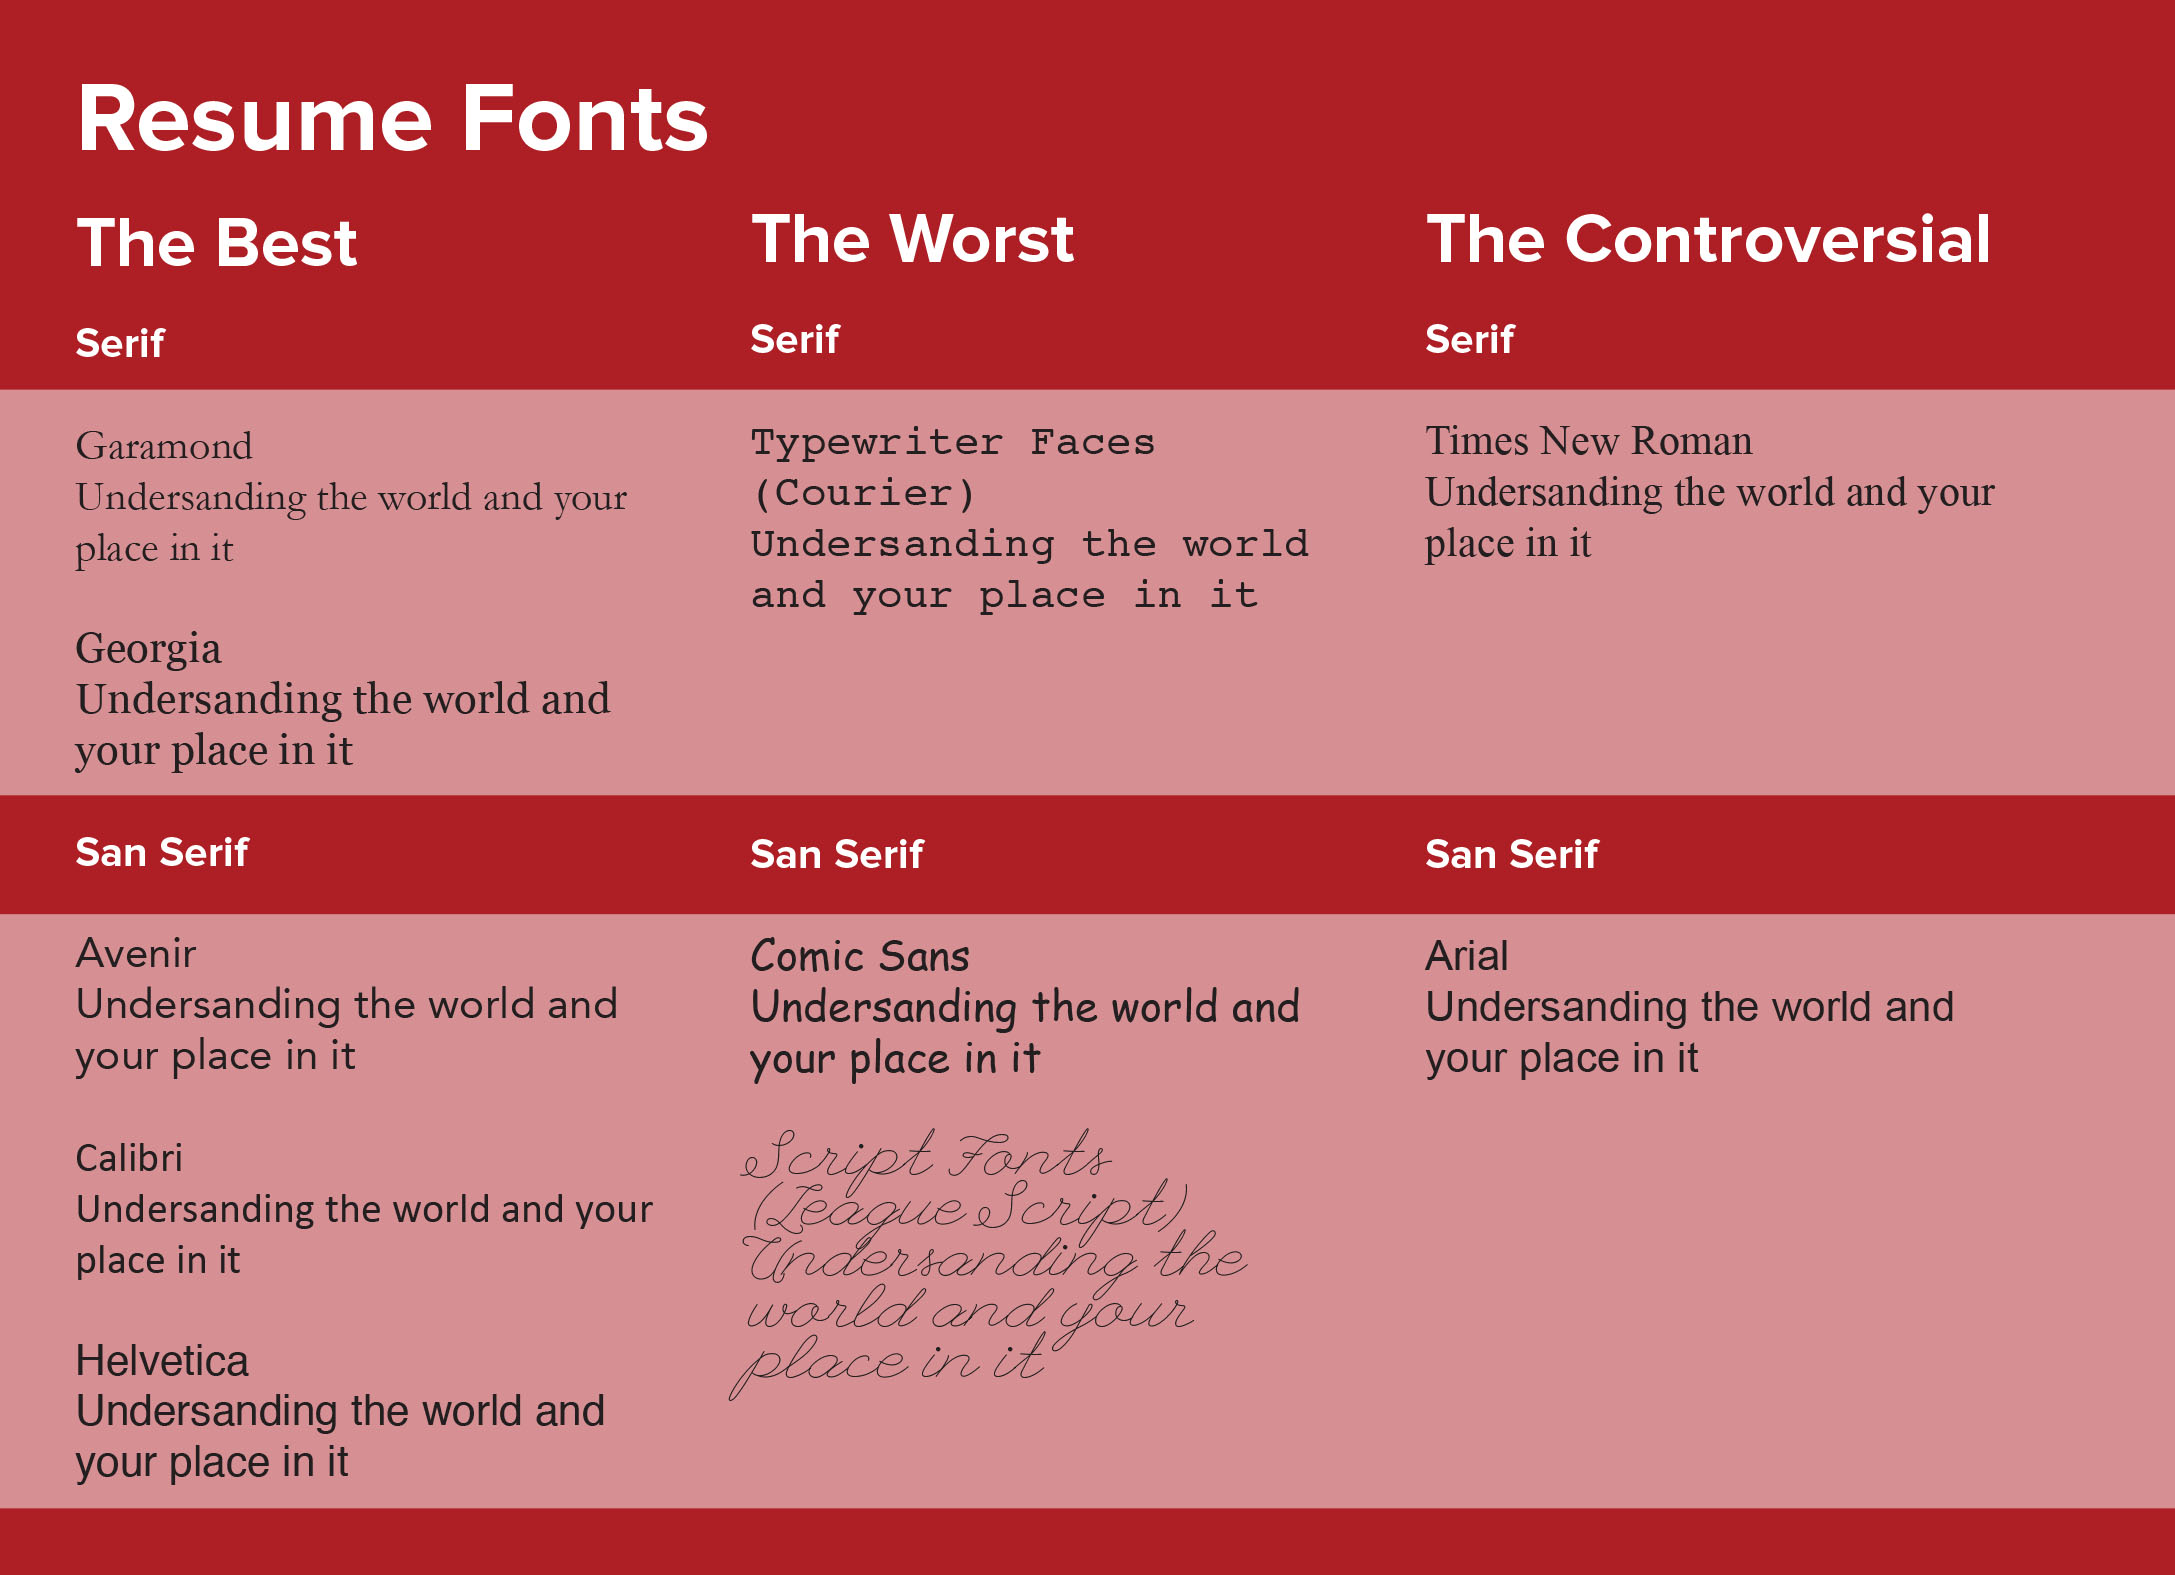 font examples 2hax3h1 jpg resume fonts 4149